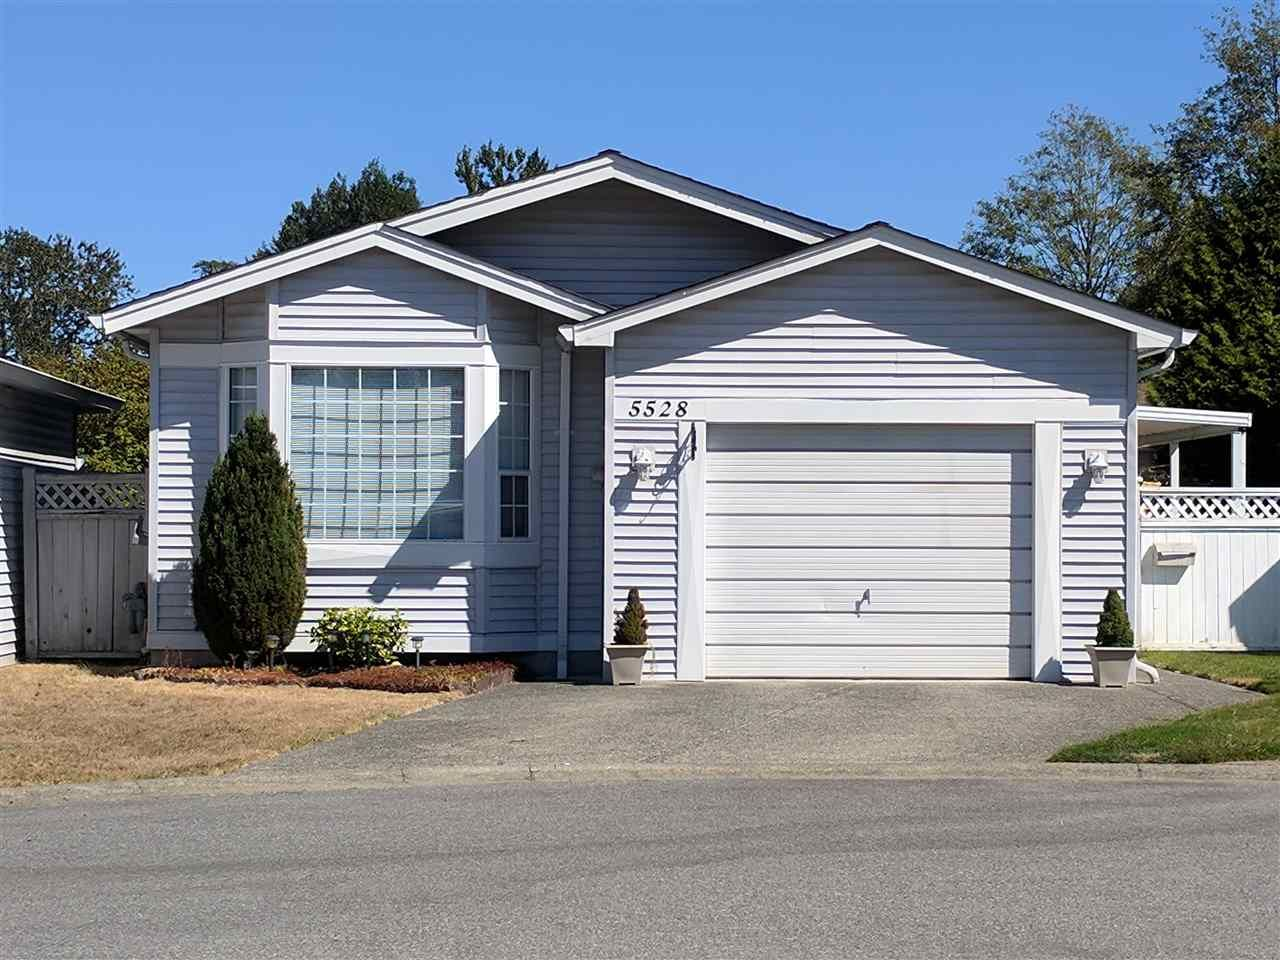 """Main Photo: 5528 SPINNAKER Bay in Delta: Neilsen Grove House for sale in """"SOUTHPOINTE"""" (Ladner)  : MLS®# R2203224"""